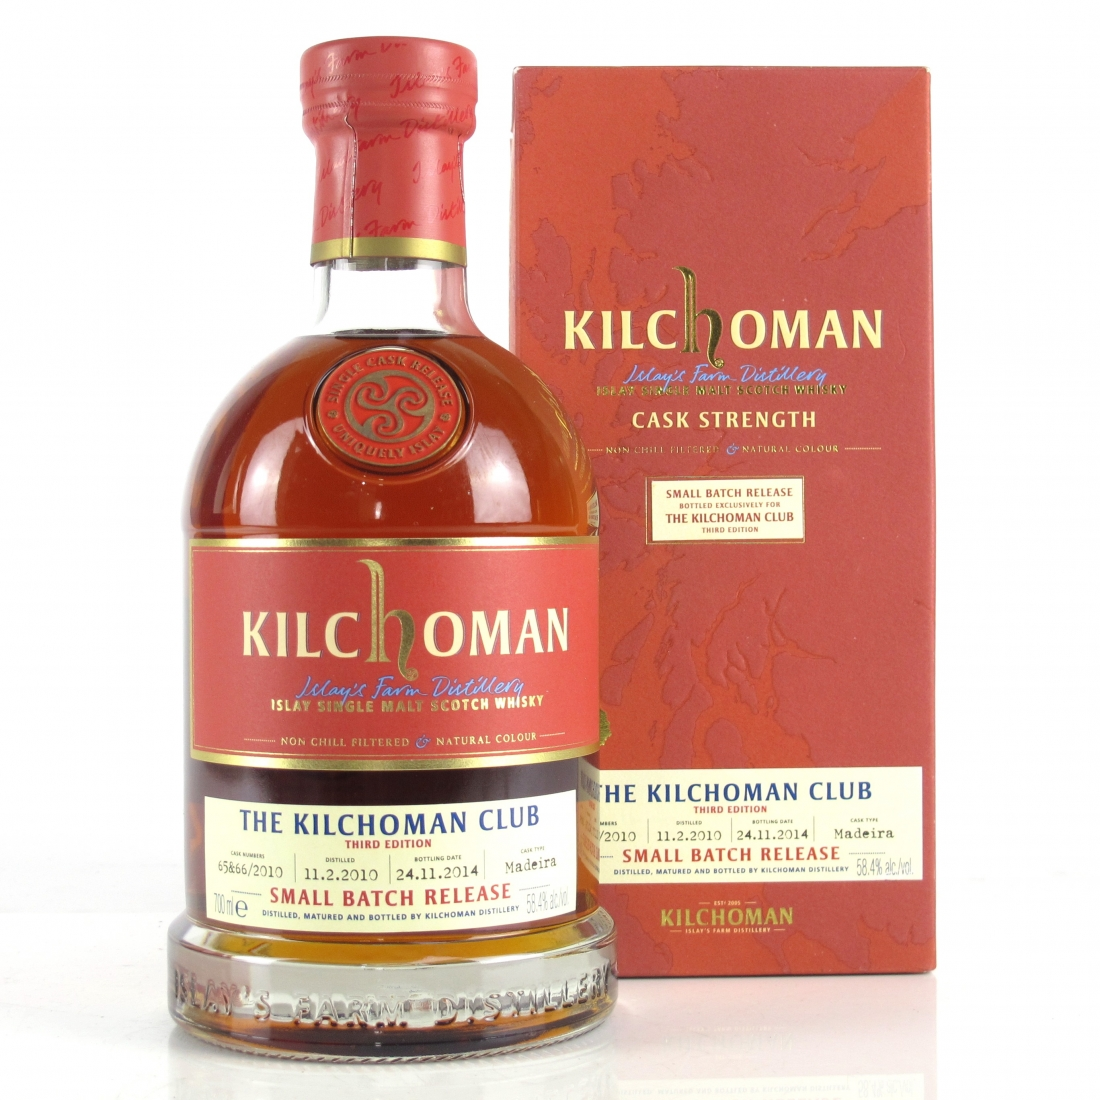 Kilchoman 2010 Small Batch / Kilchoman Club 3rd Edition